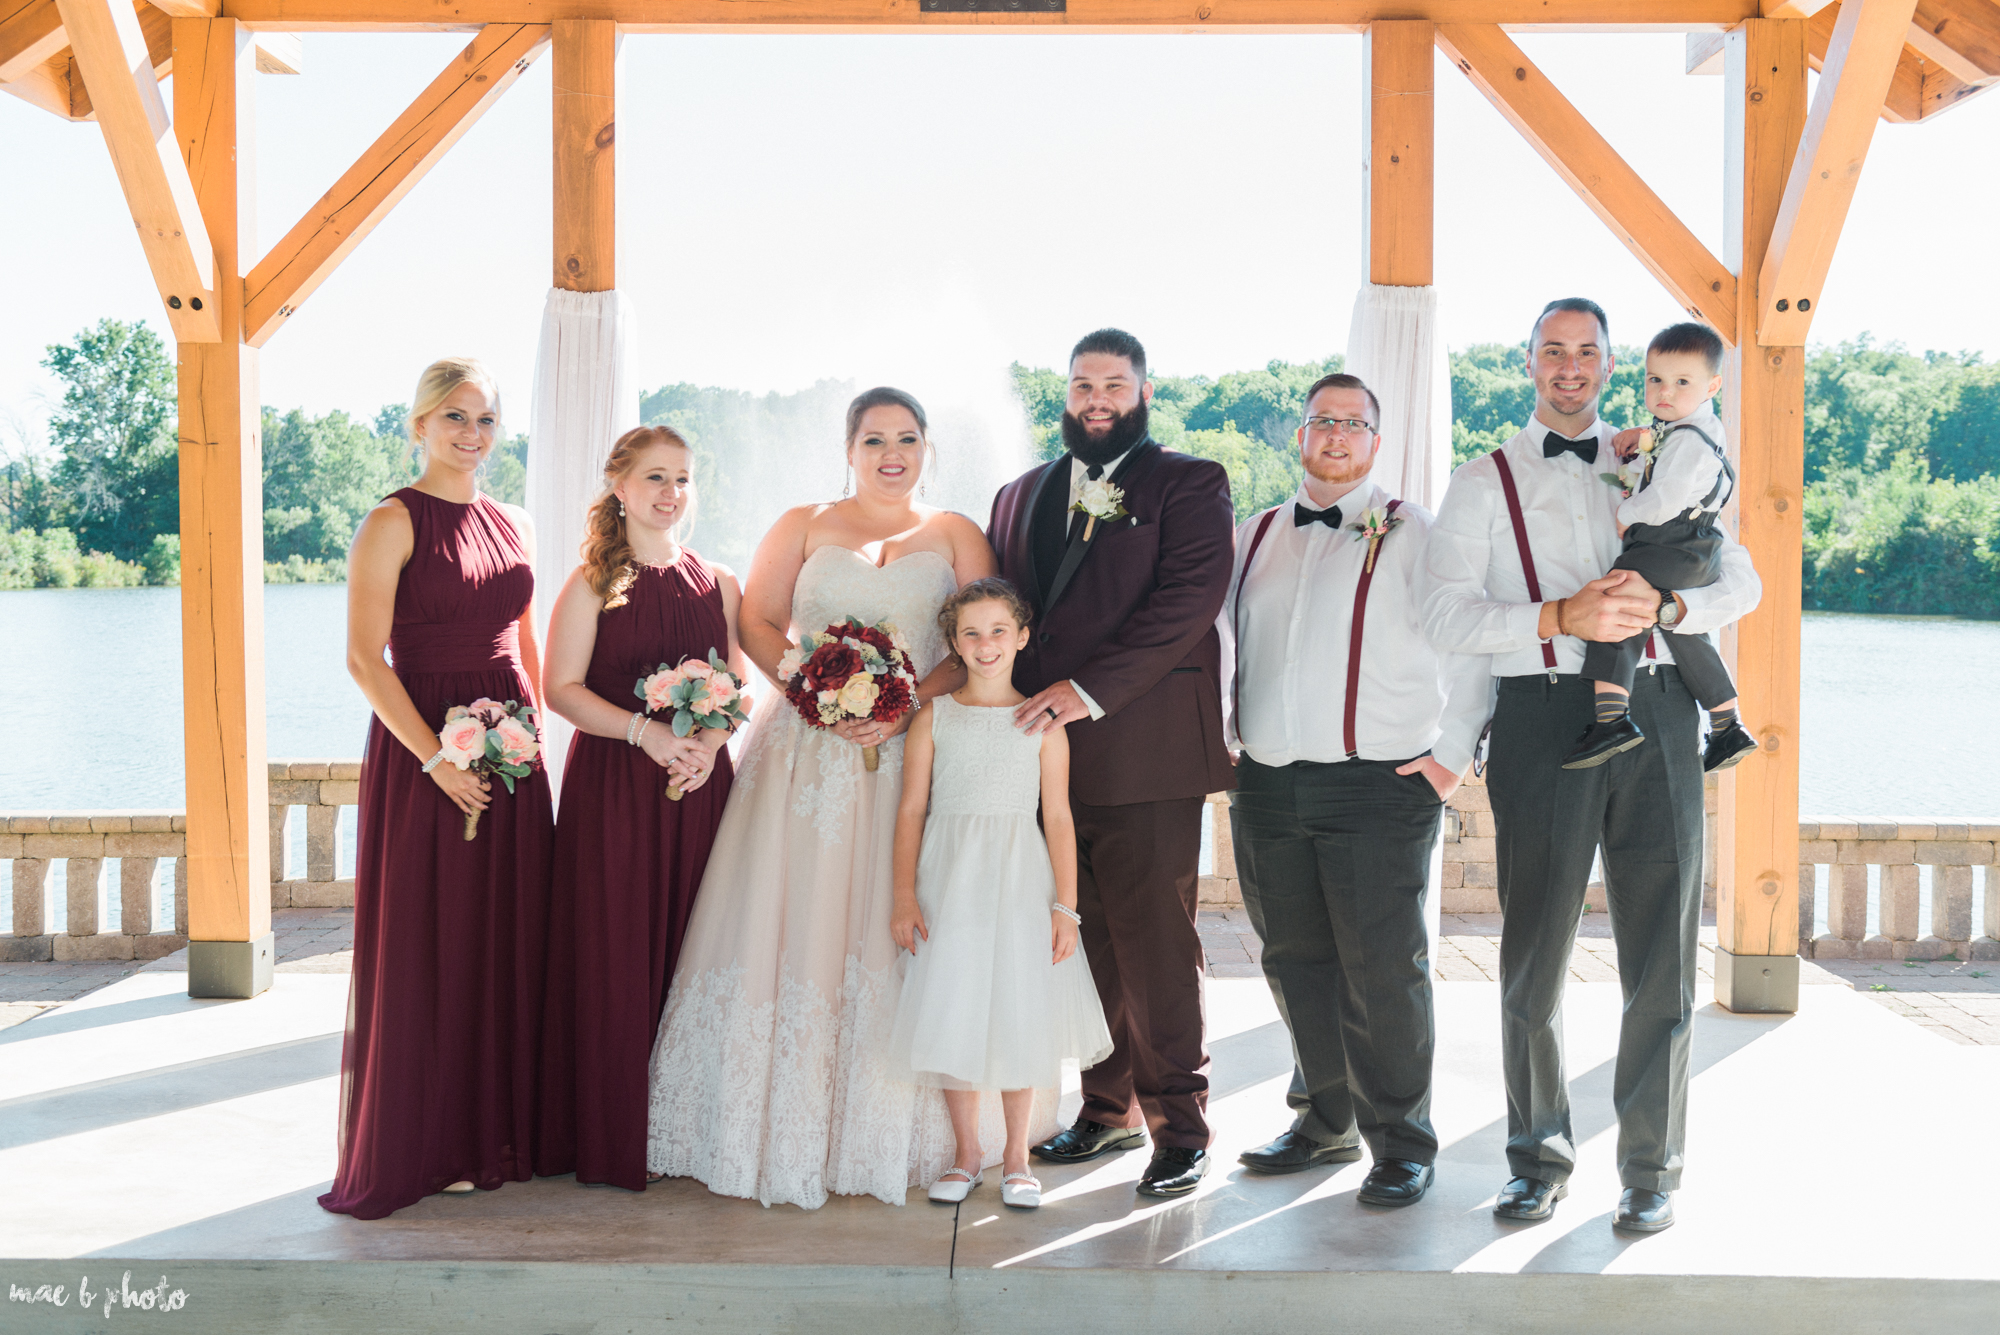 Amber & Kyle's Rustic Barn Wedding at SNPJ in Enon Valley, PA by Mae B Photo-57.jpg